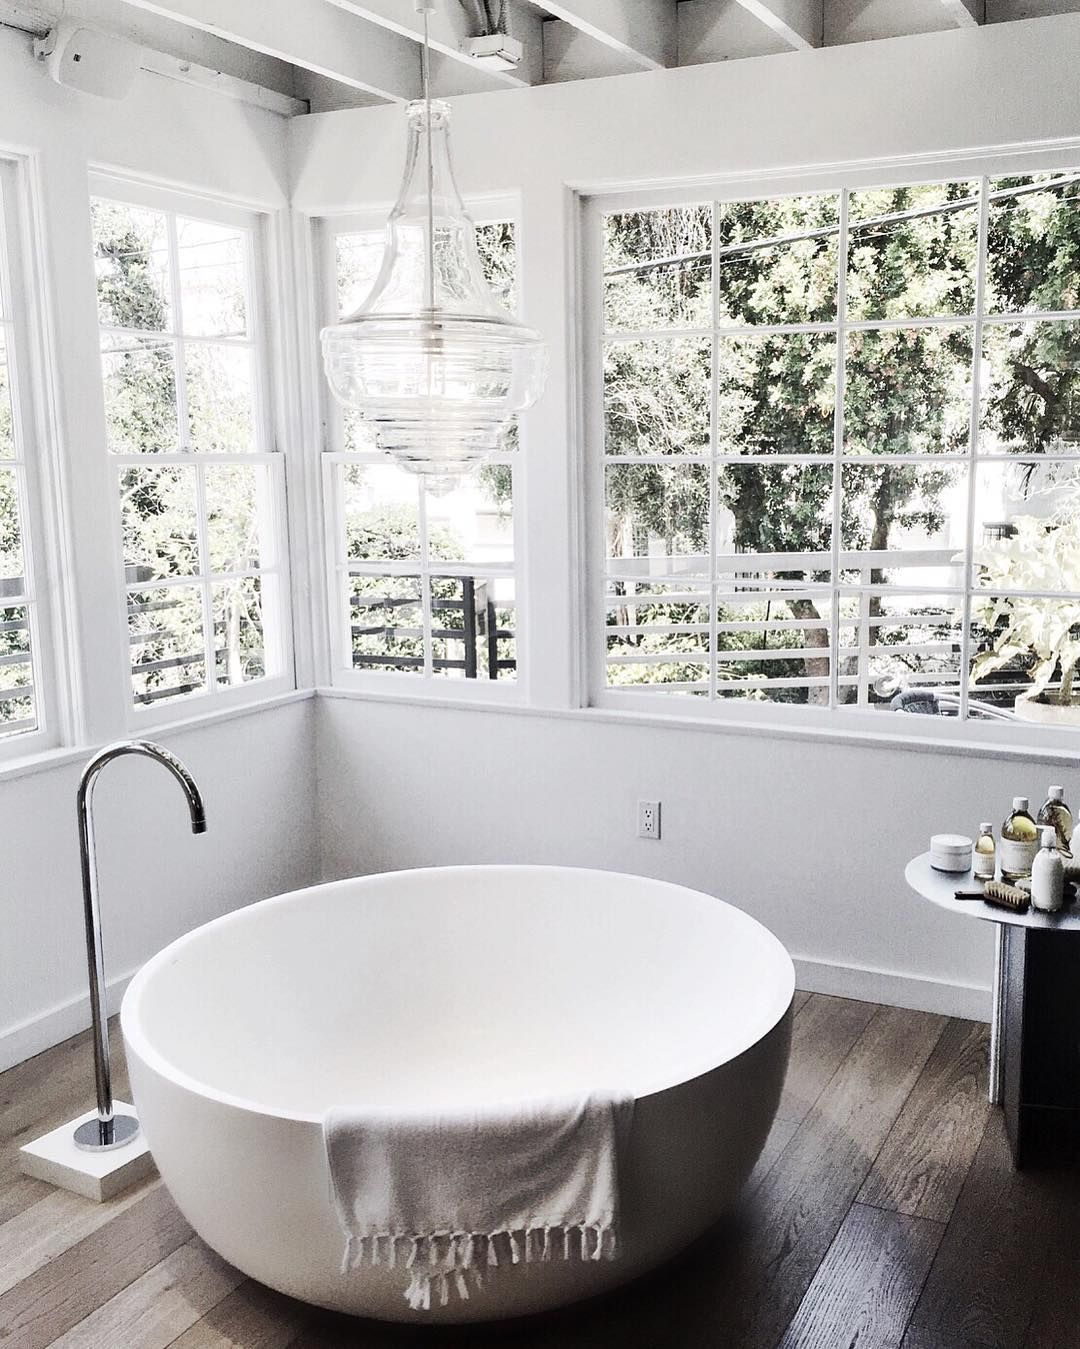 dream bath | Bath | Pinterest | Bath, Tubs and House